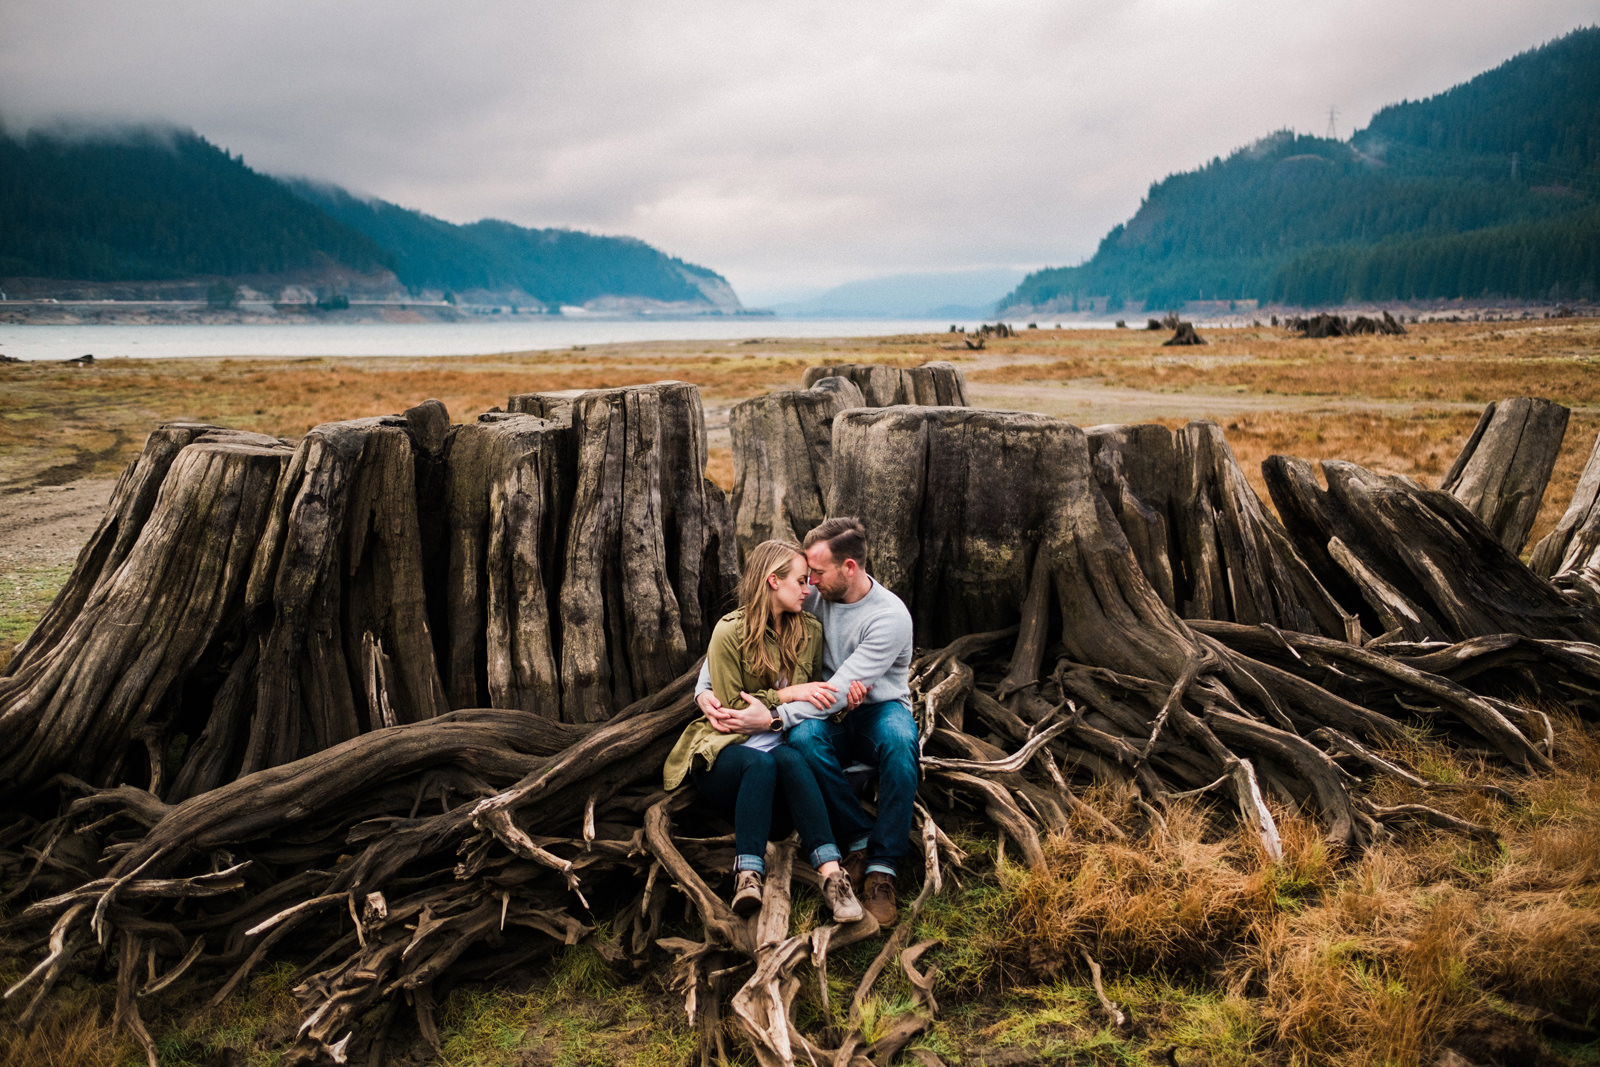 098-snoqualmie-pass-engagement-photo-with-tree-stumps-and-mountain-lakes.jpg